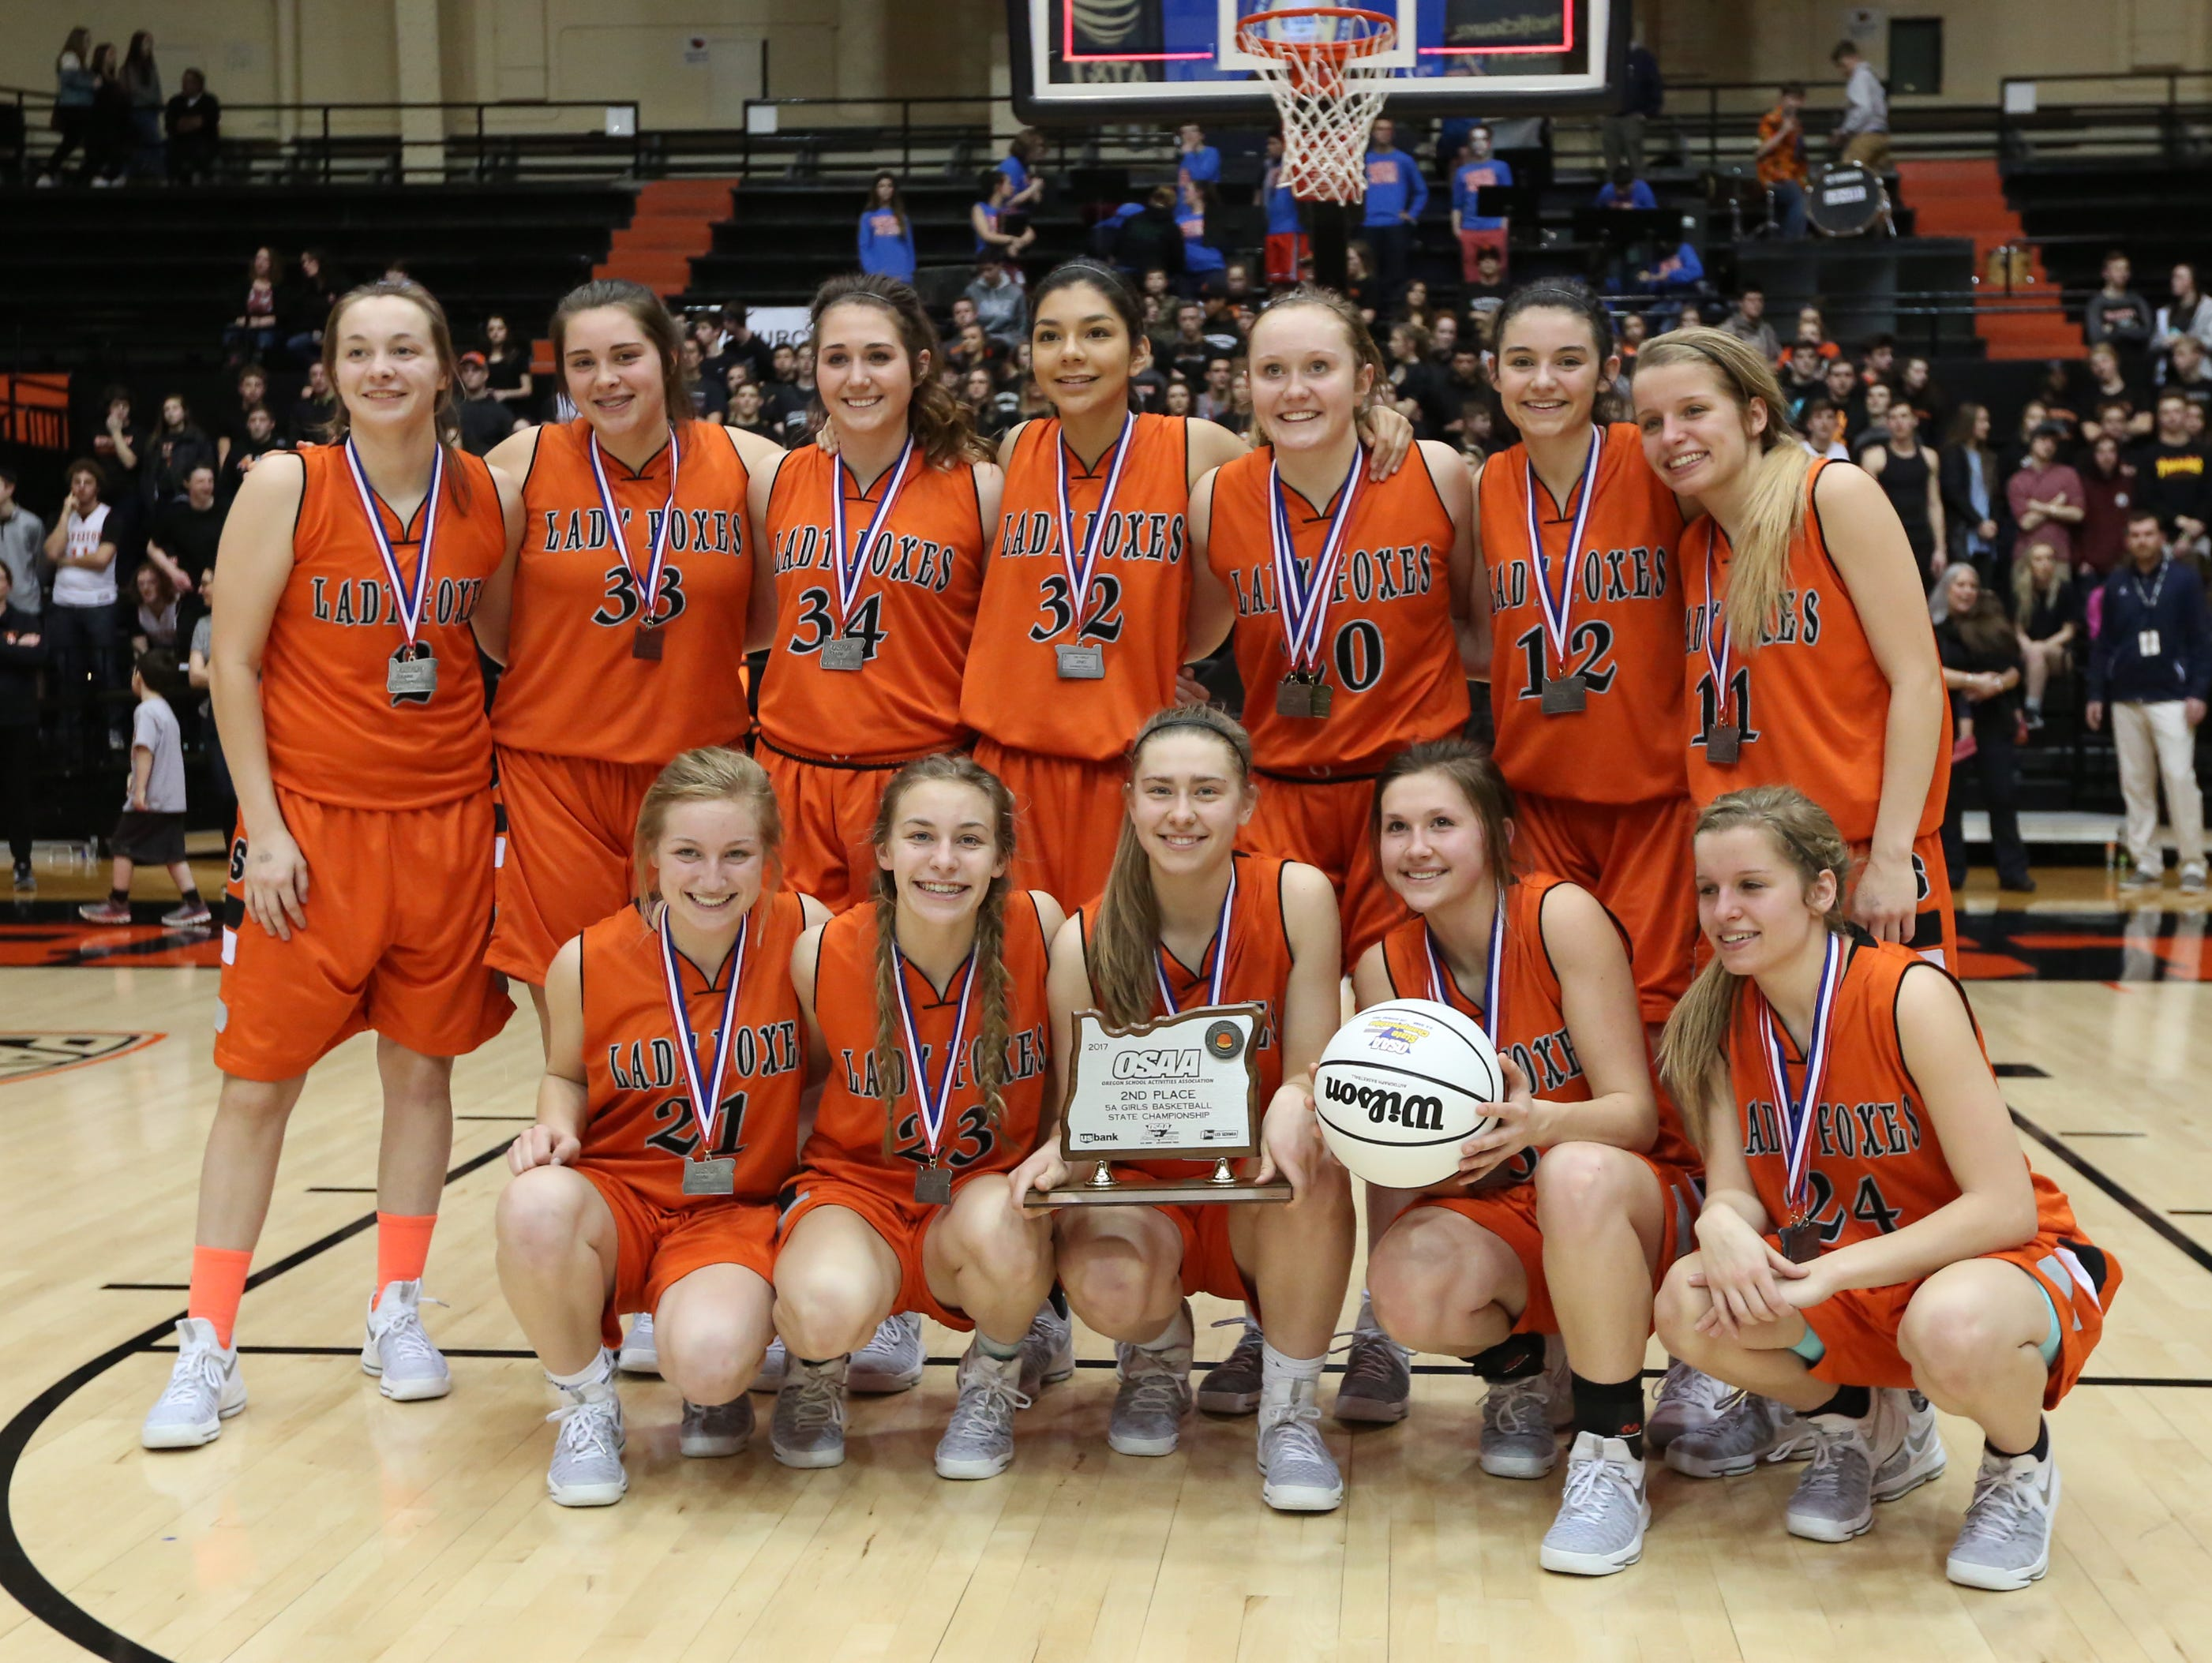 Silverton places second in the OSAA Class 5A state championship on Friday, March 10, 2017, at Gill Coliseum in Corvallis. LaSalle defeated the Foxes 42-28.